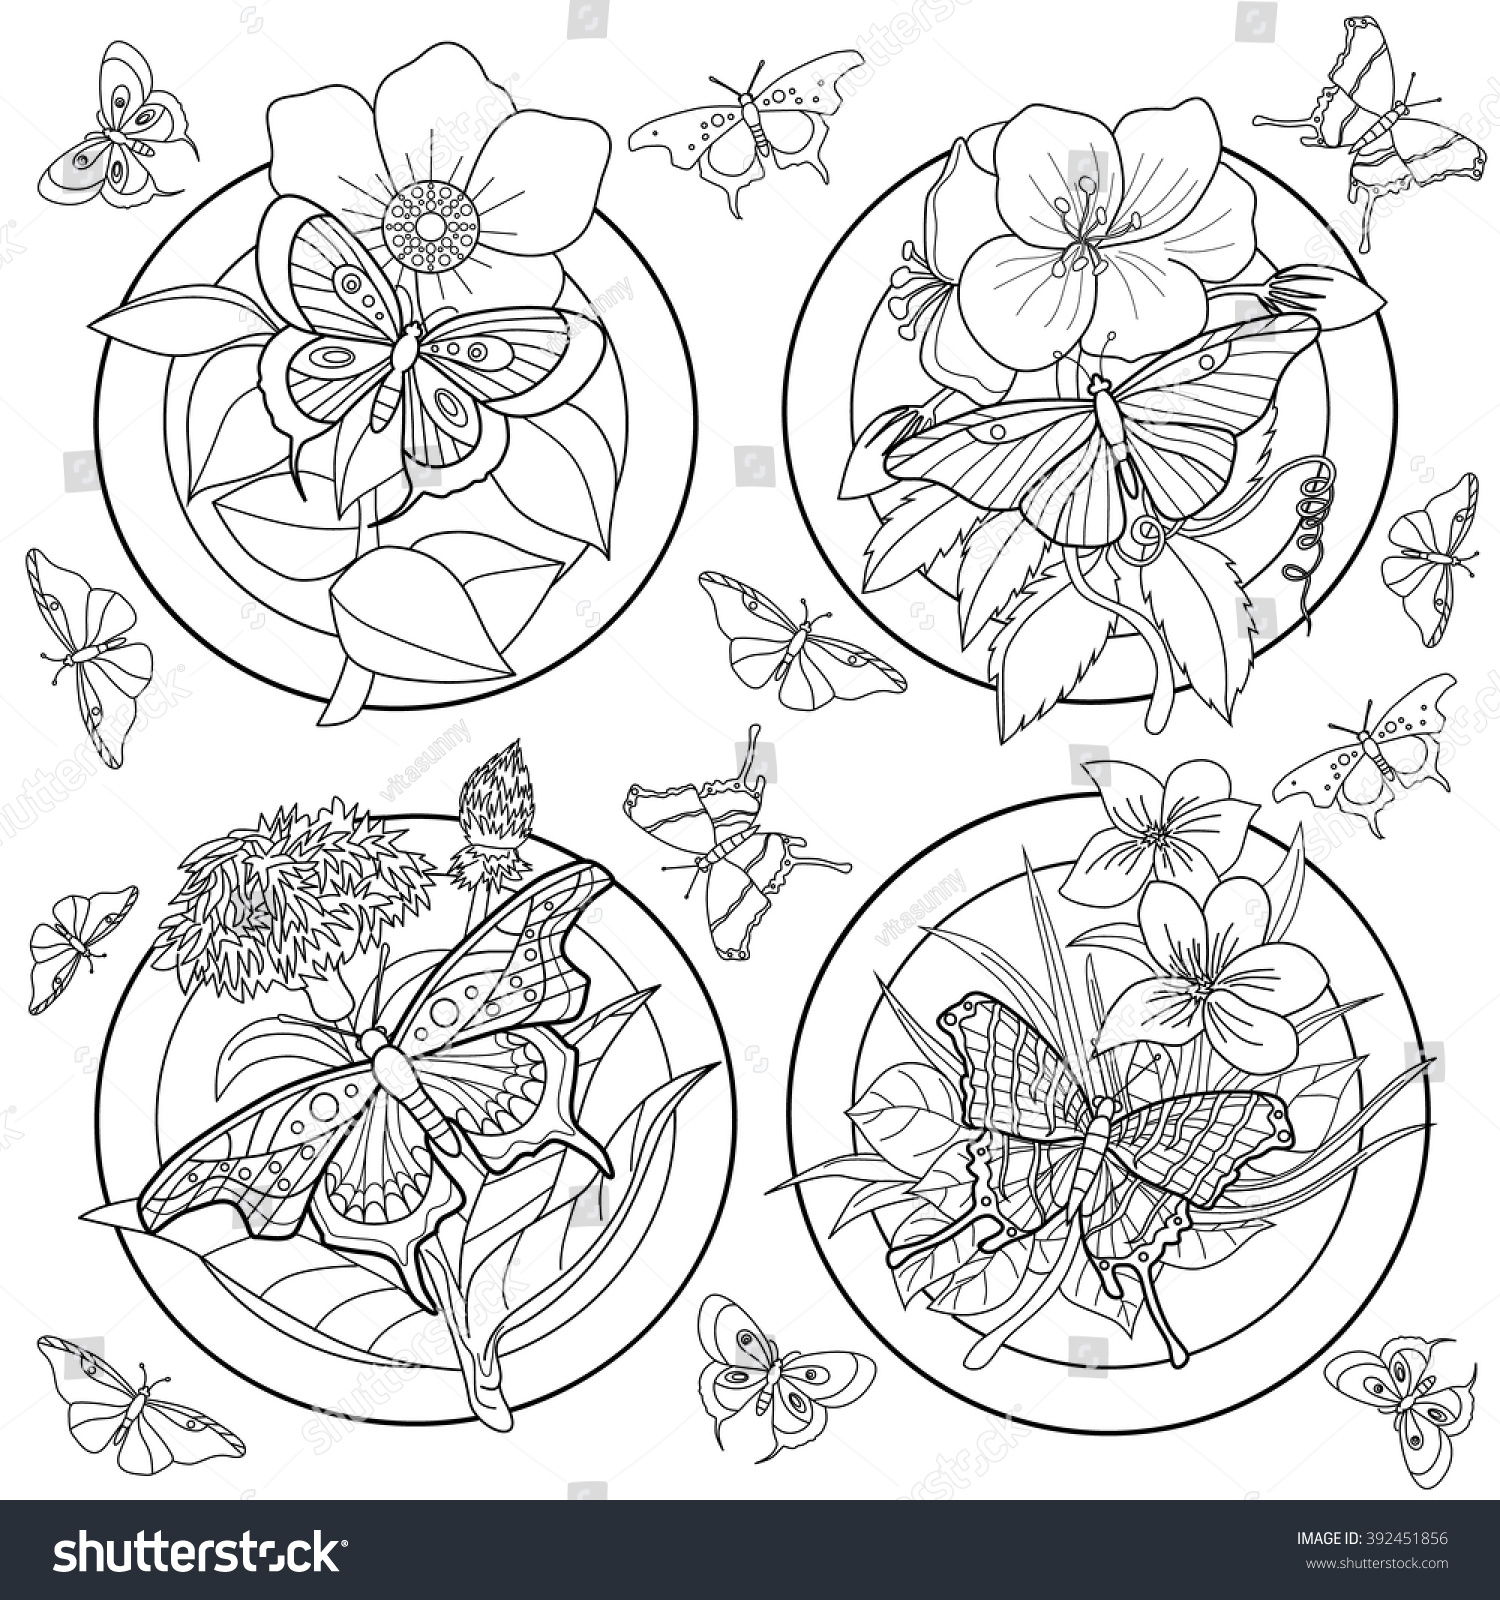 Coloring Page Adults Butterflies Flowers Stock Vector 392451856 ...